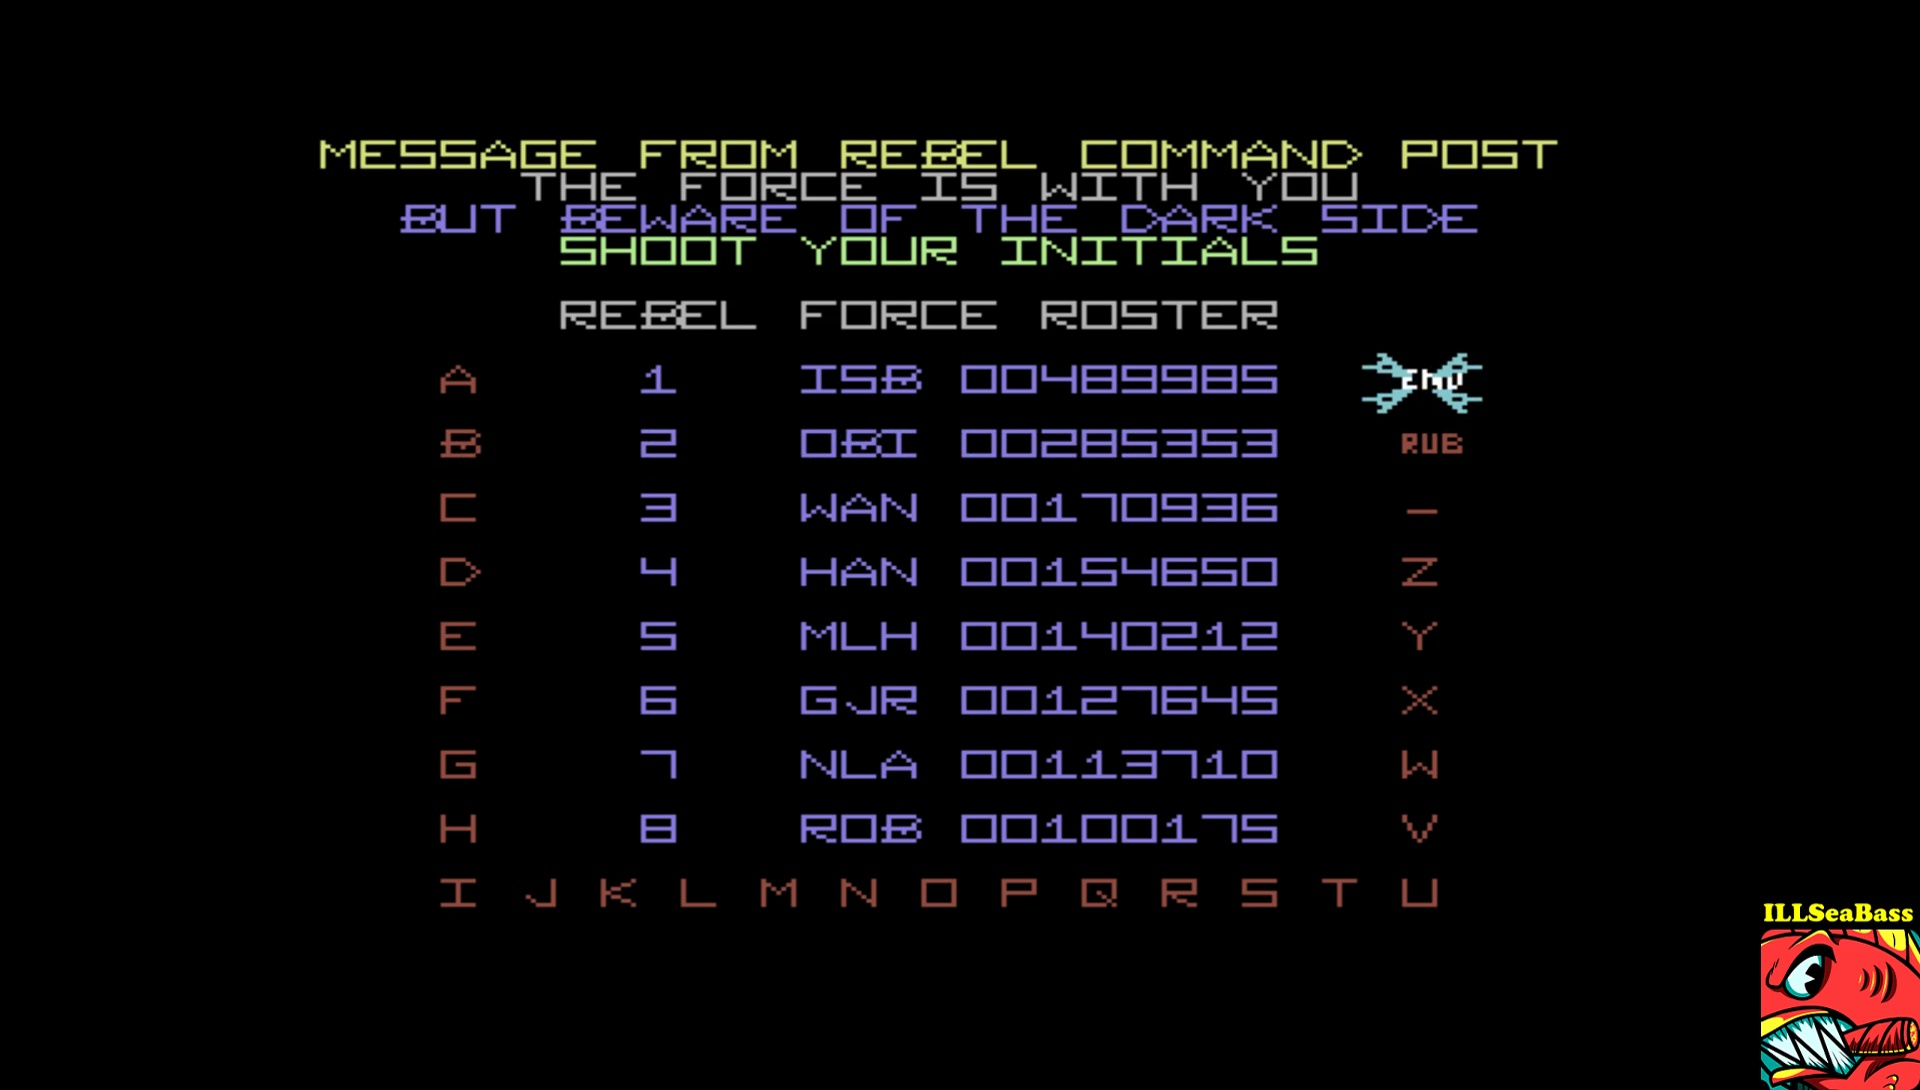 ILLSeaBass: The Empire Strikes Back [Wave 2: Medium] (Commodore 64 Emulated) 489,985 points on 2017-04-26 22:39:02